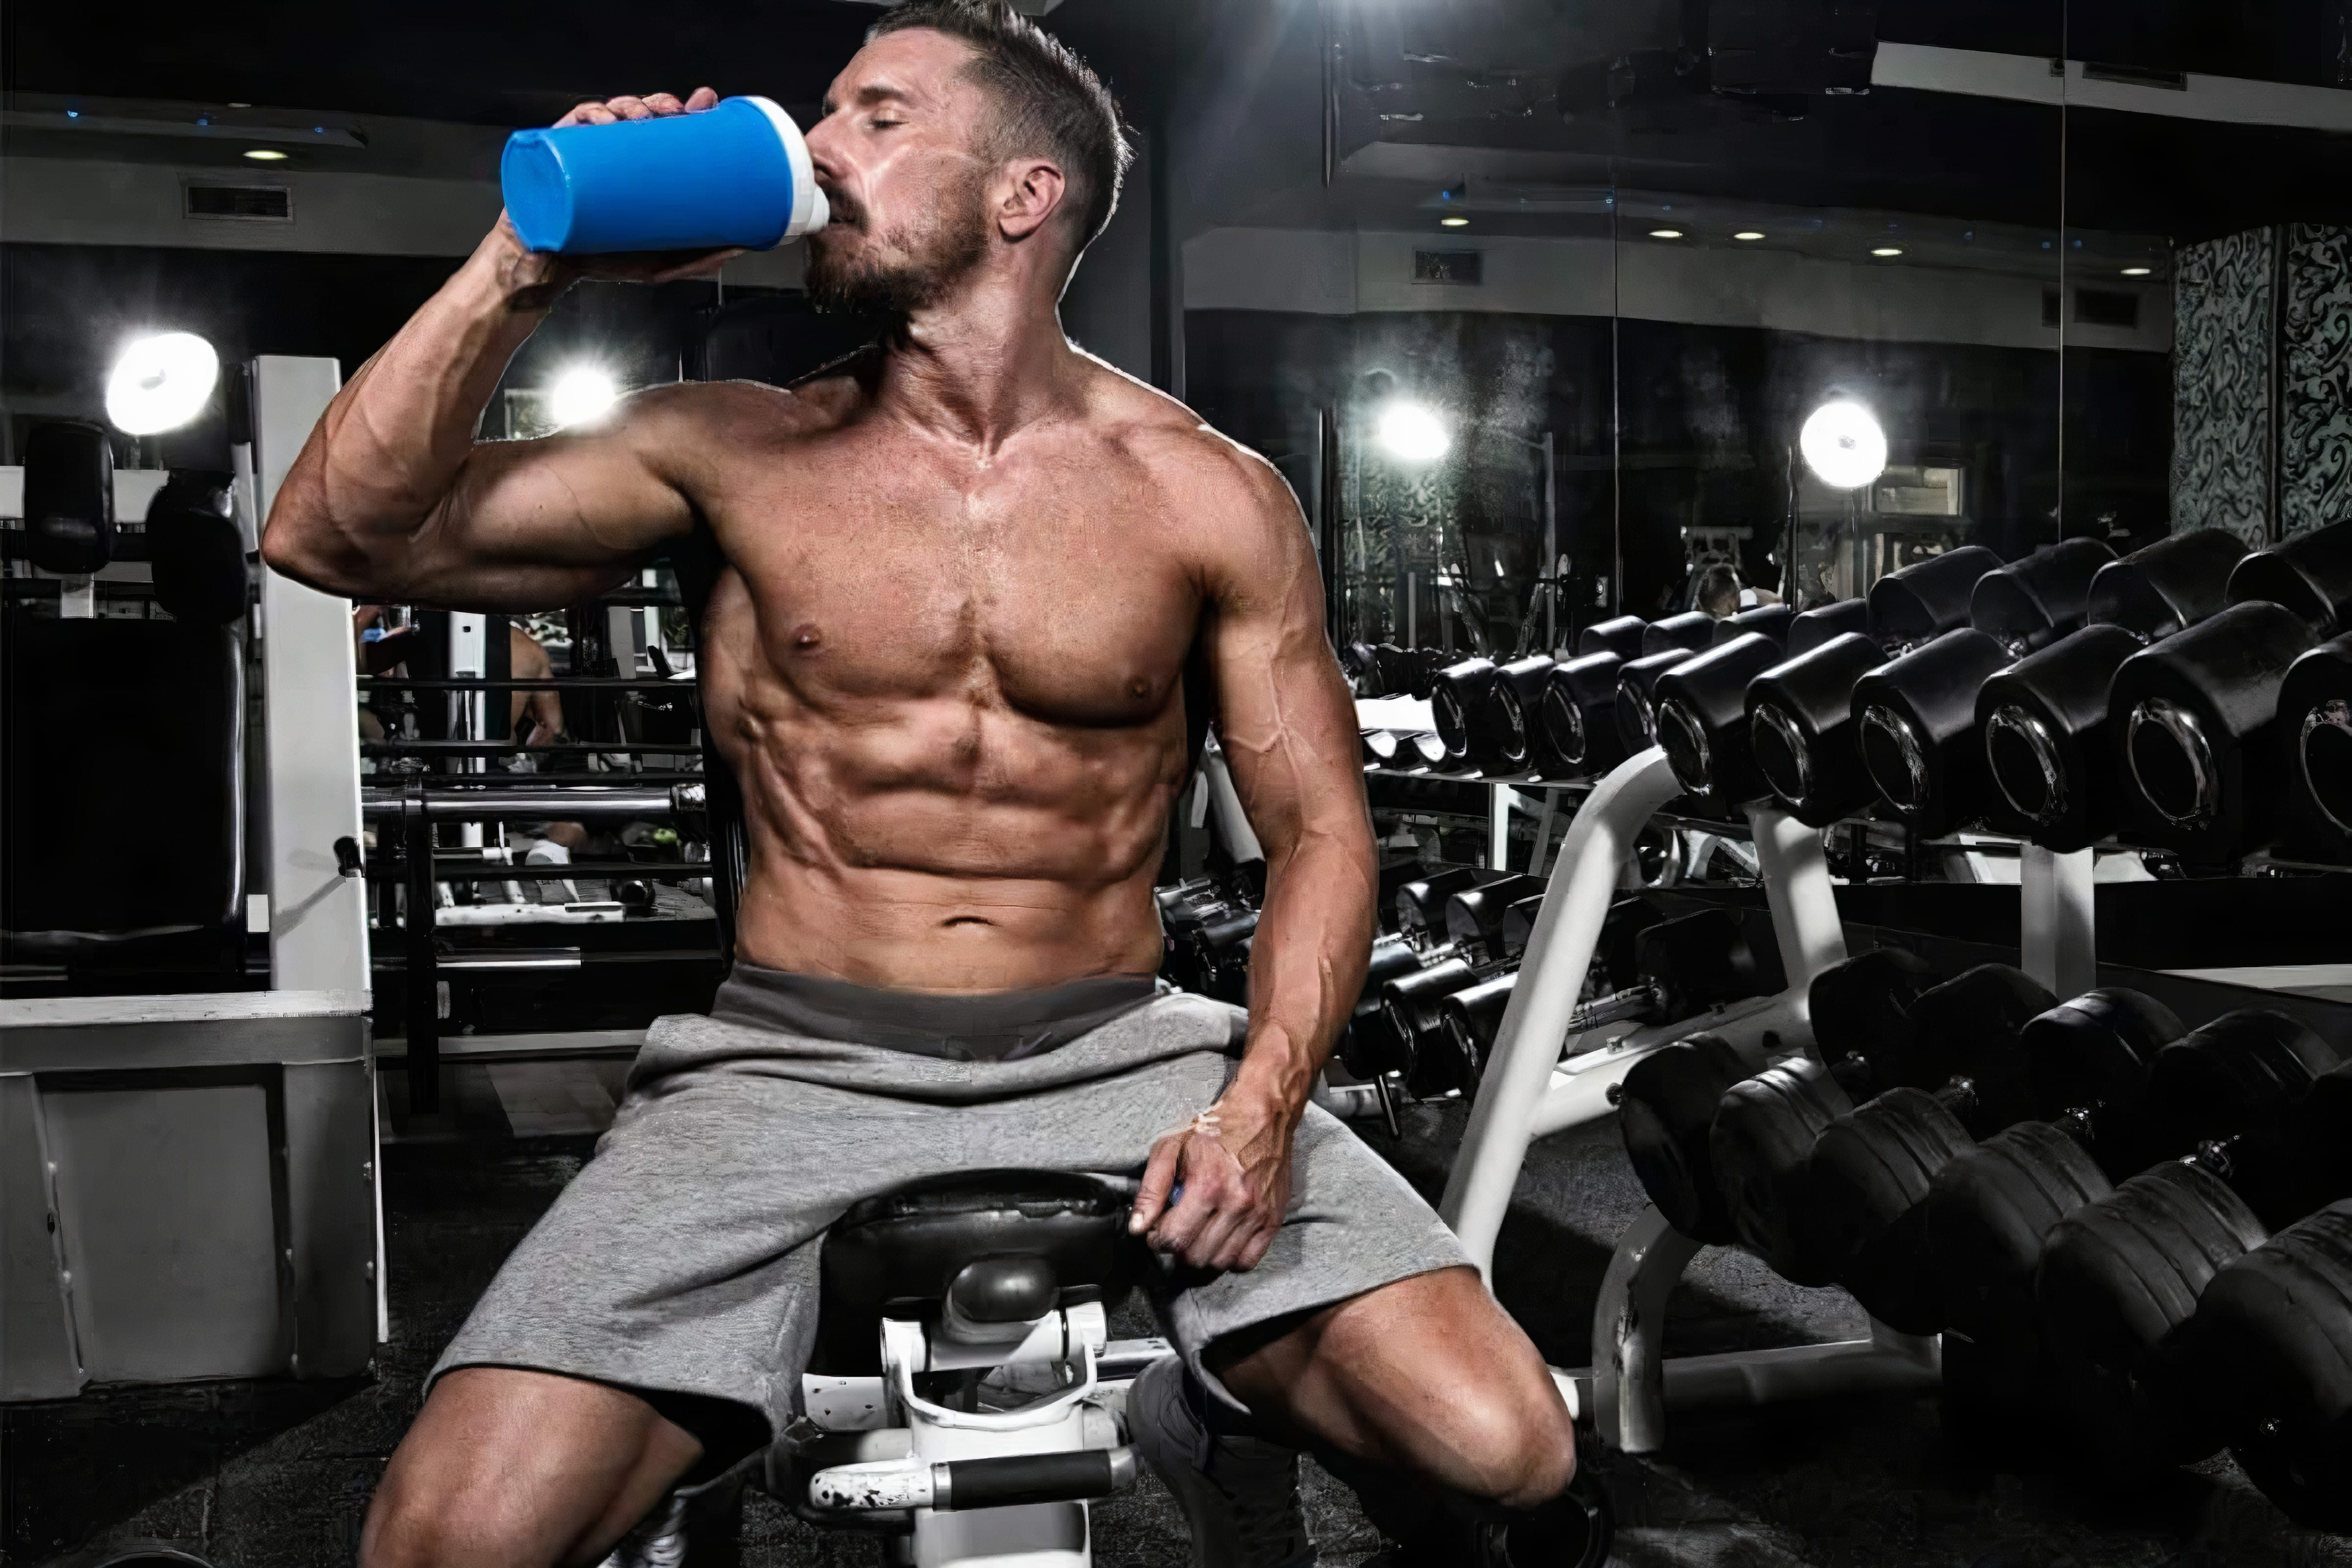 athlete prefering natural steroids